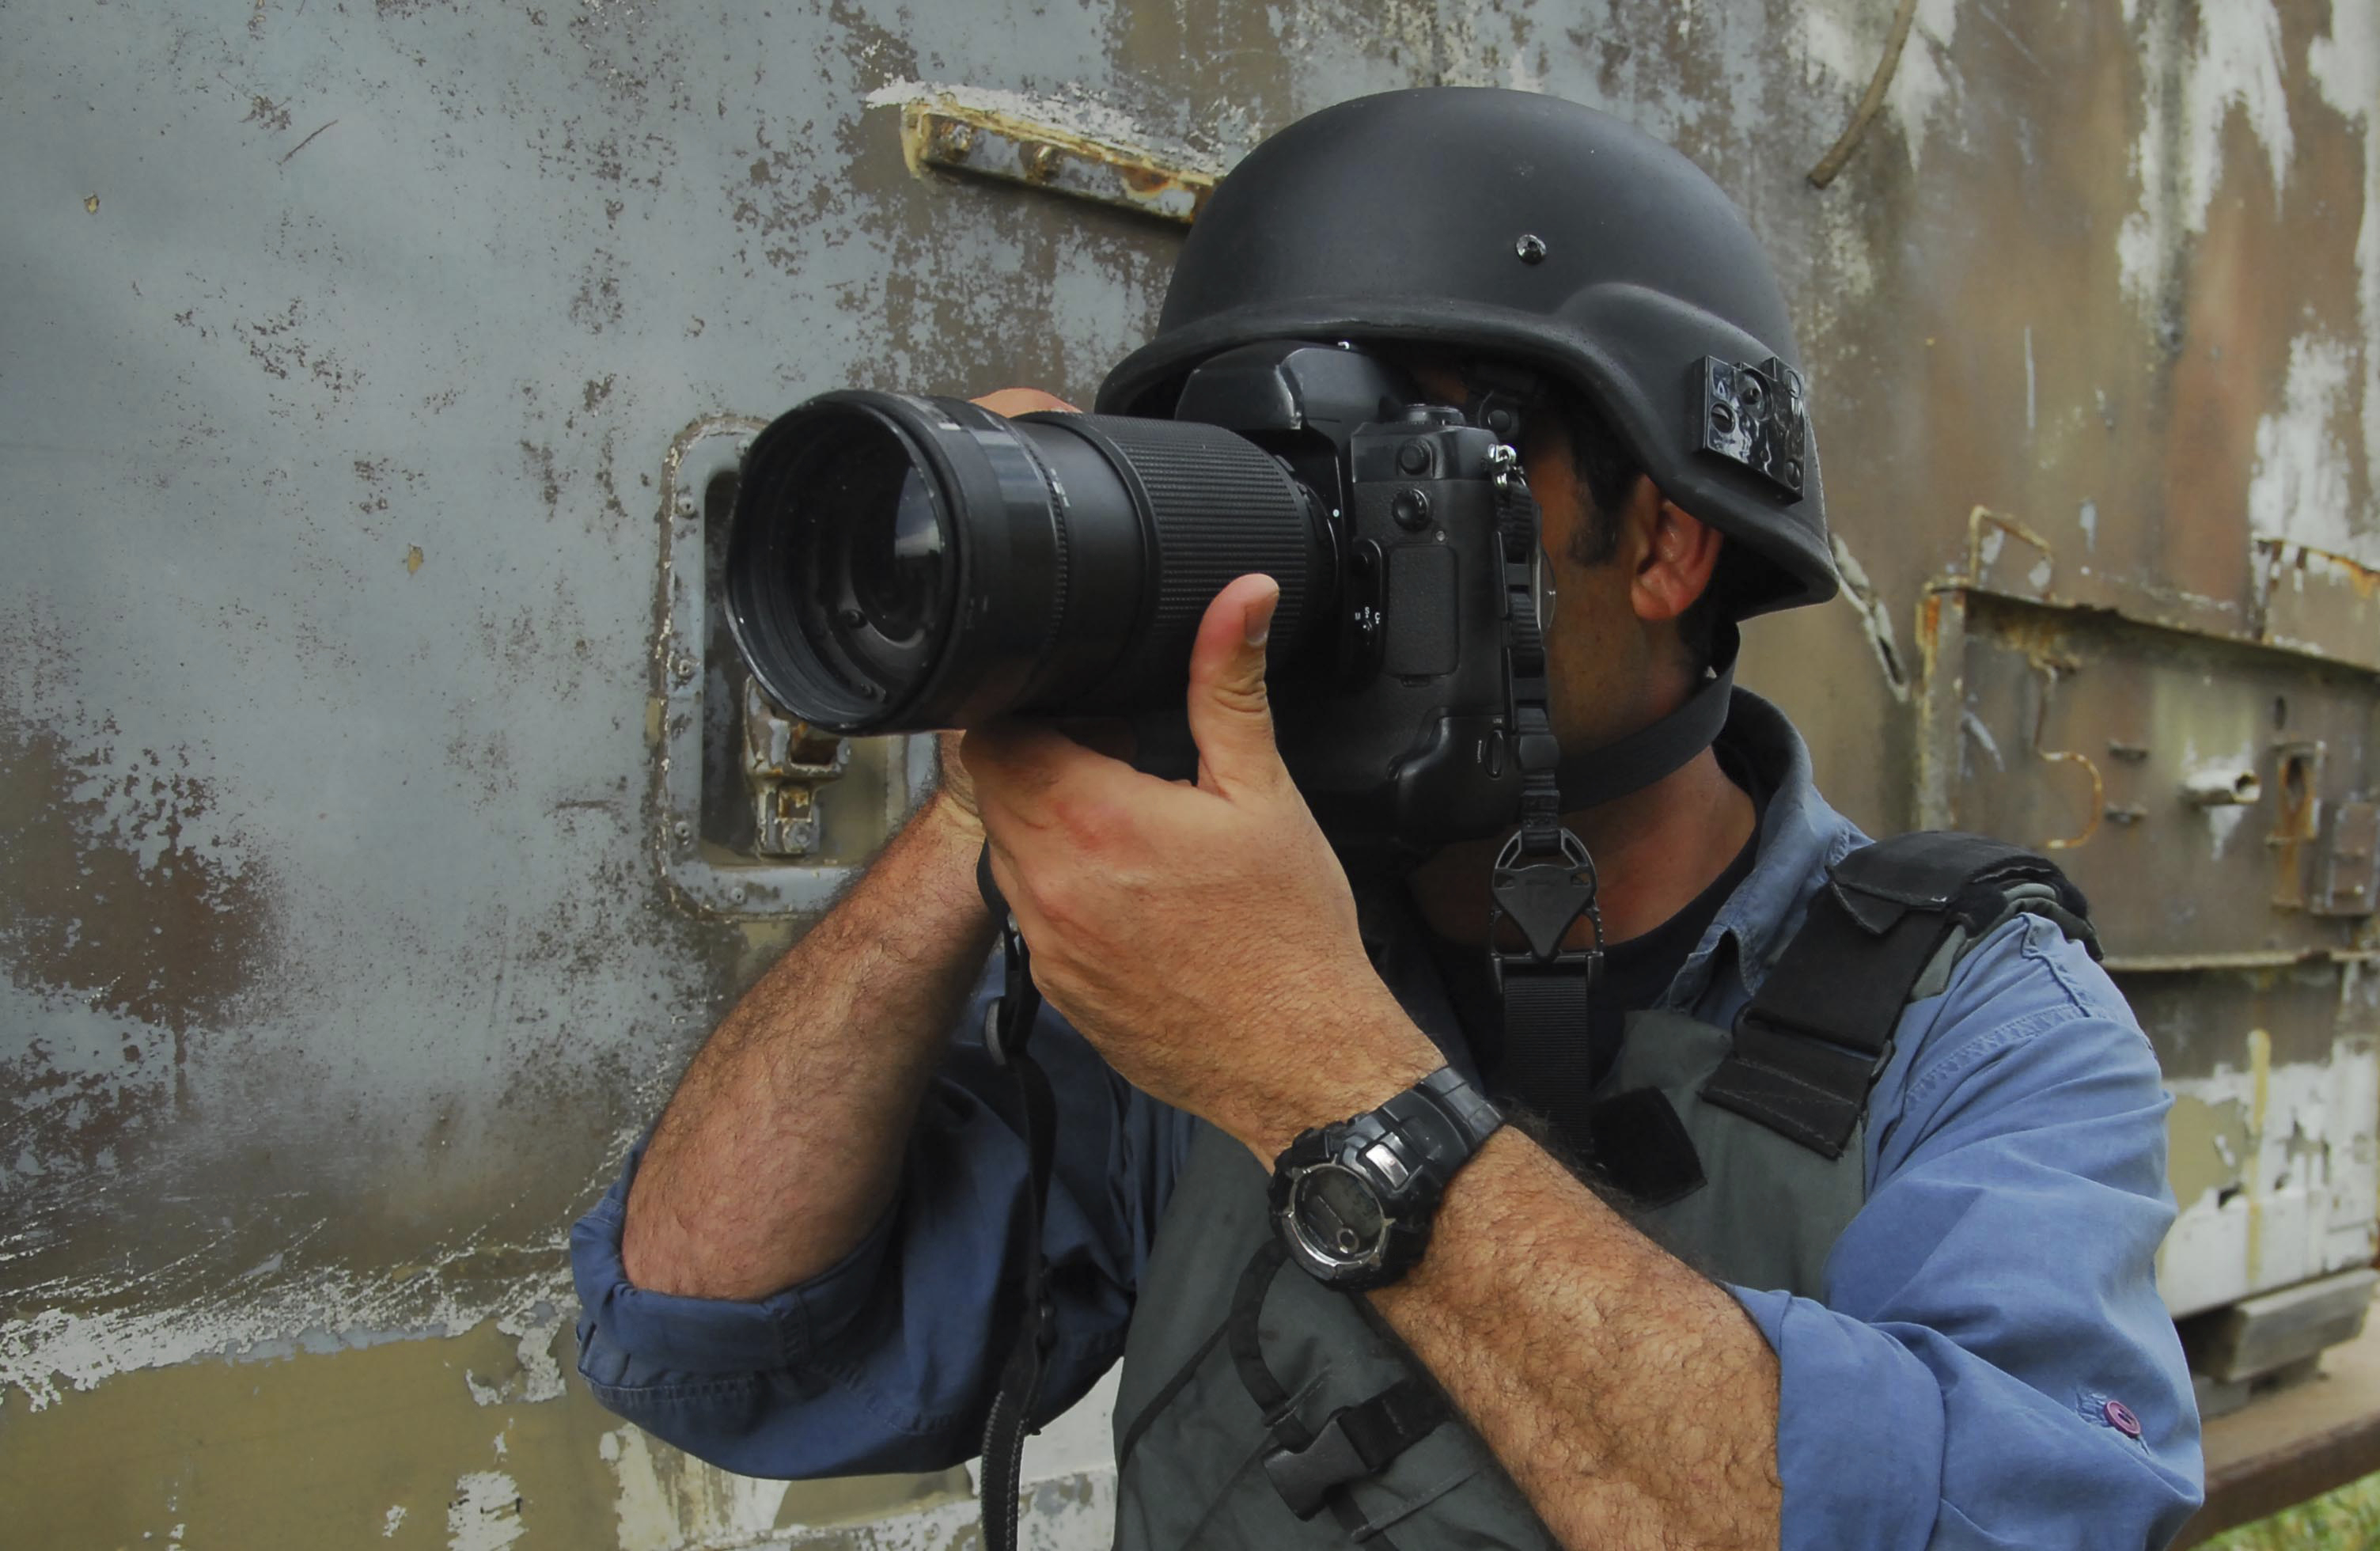 Hostile environment training - journalist security - risk assessment for journalists